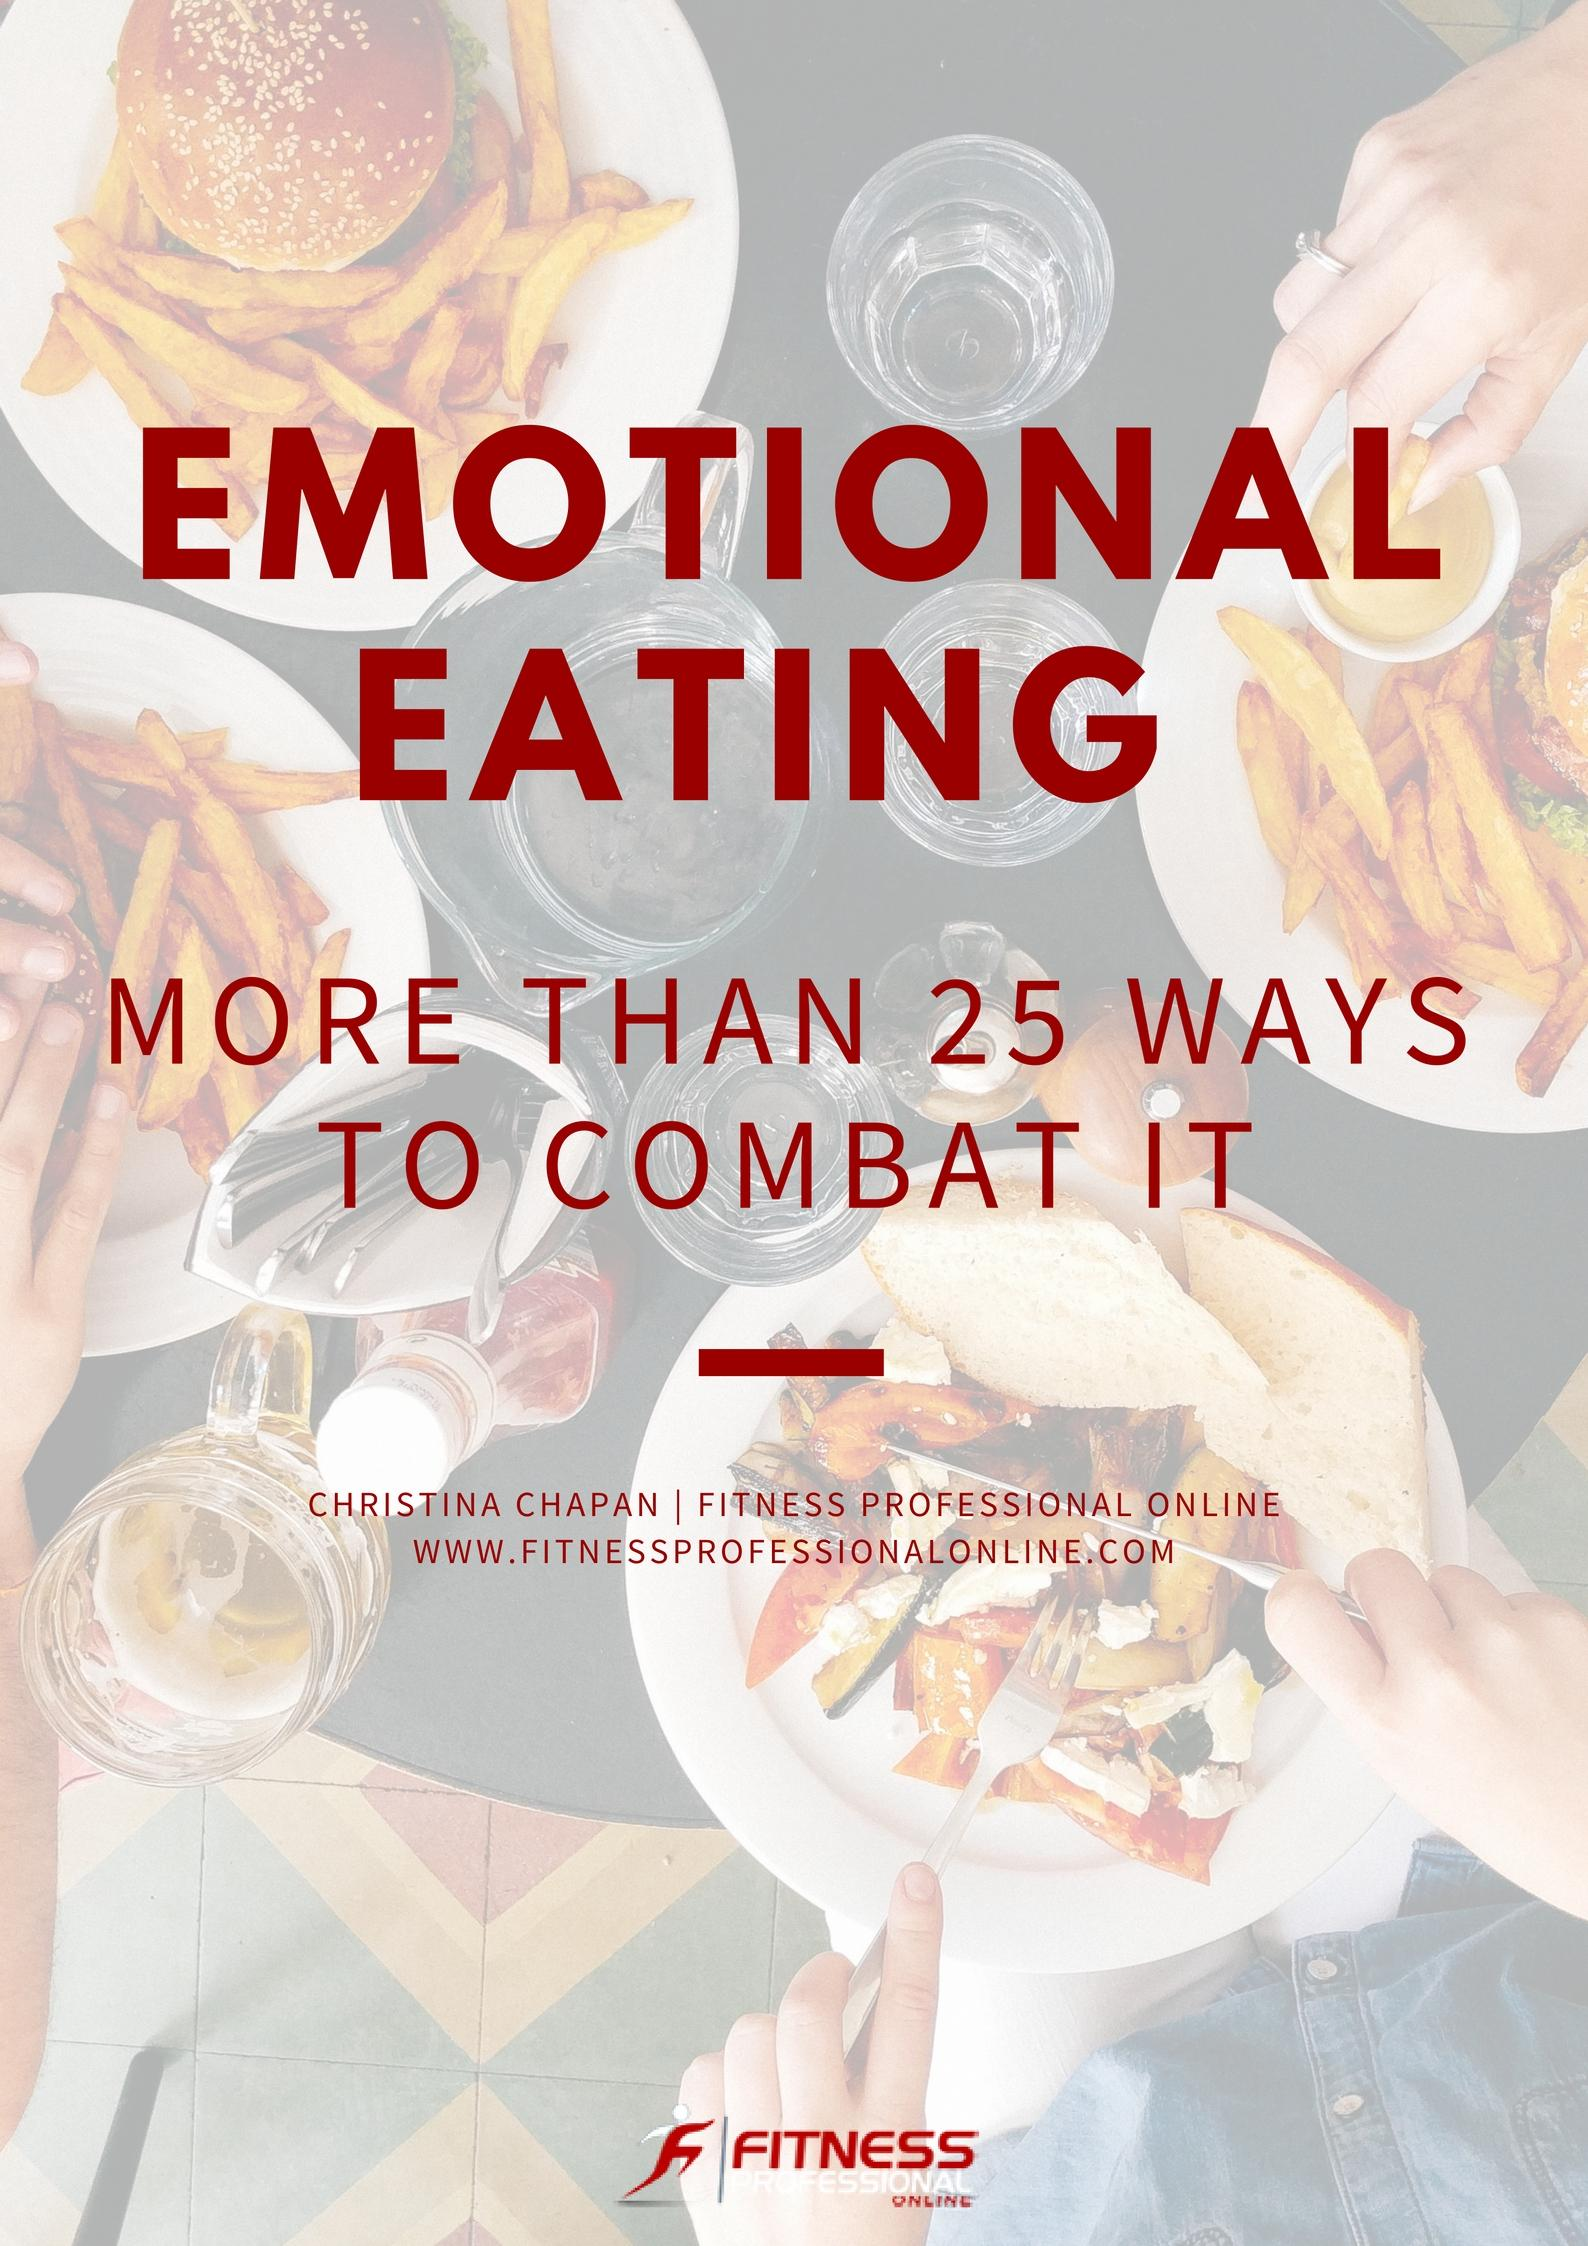 Some ways to deal with emotional eating.